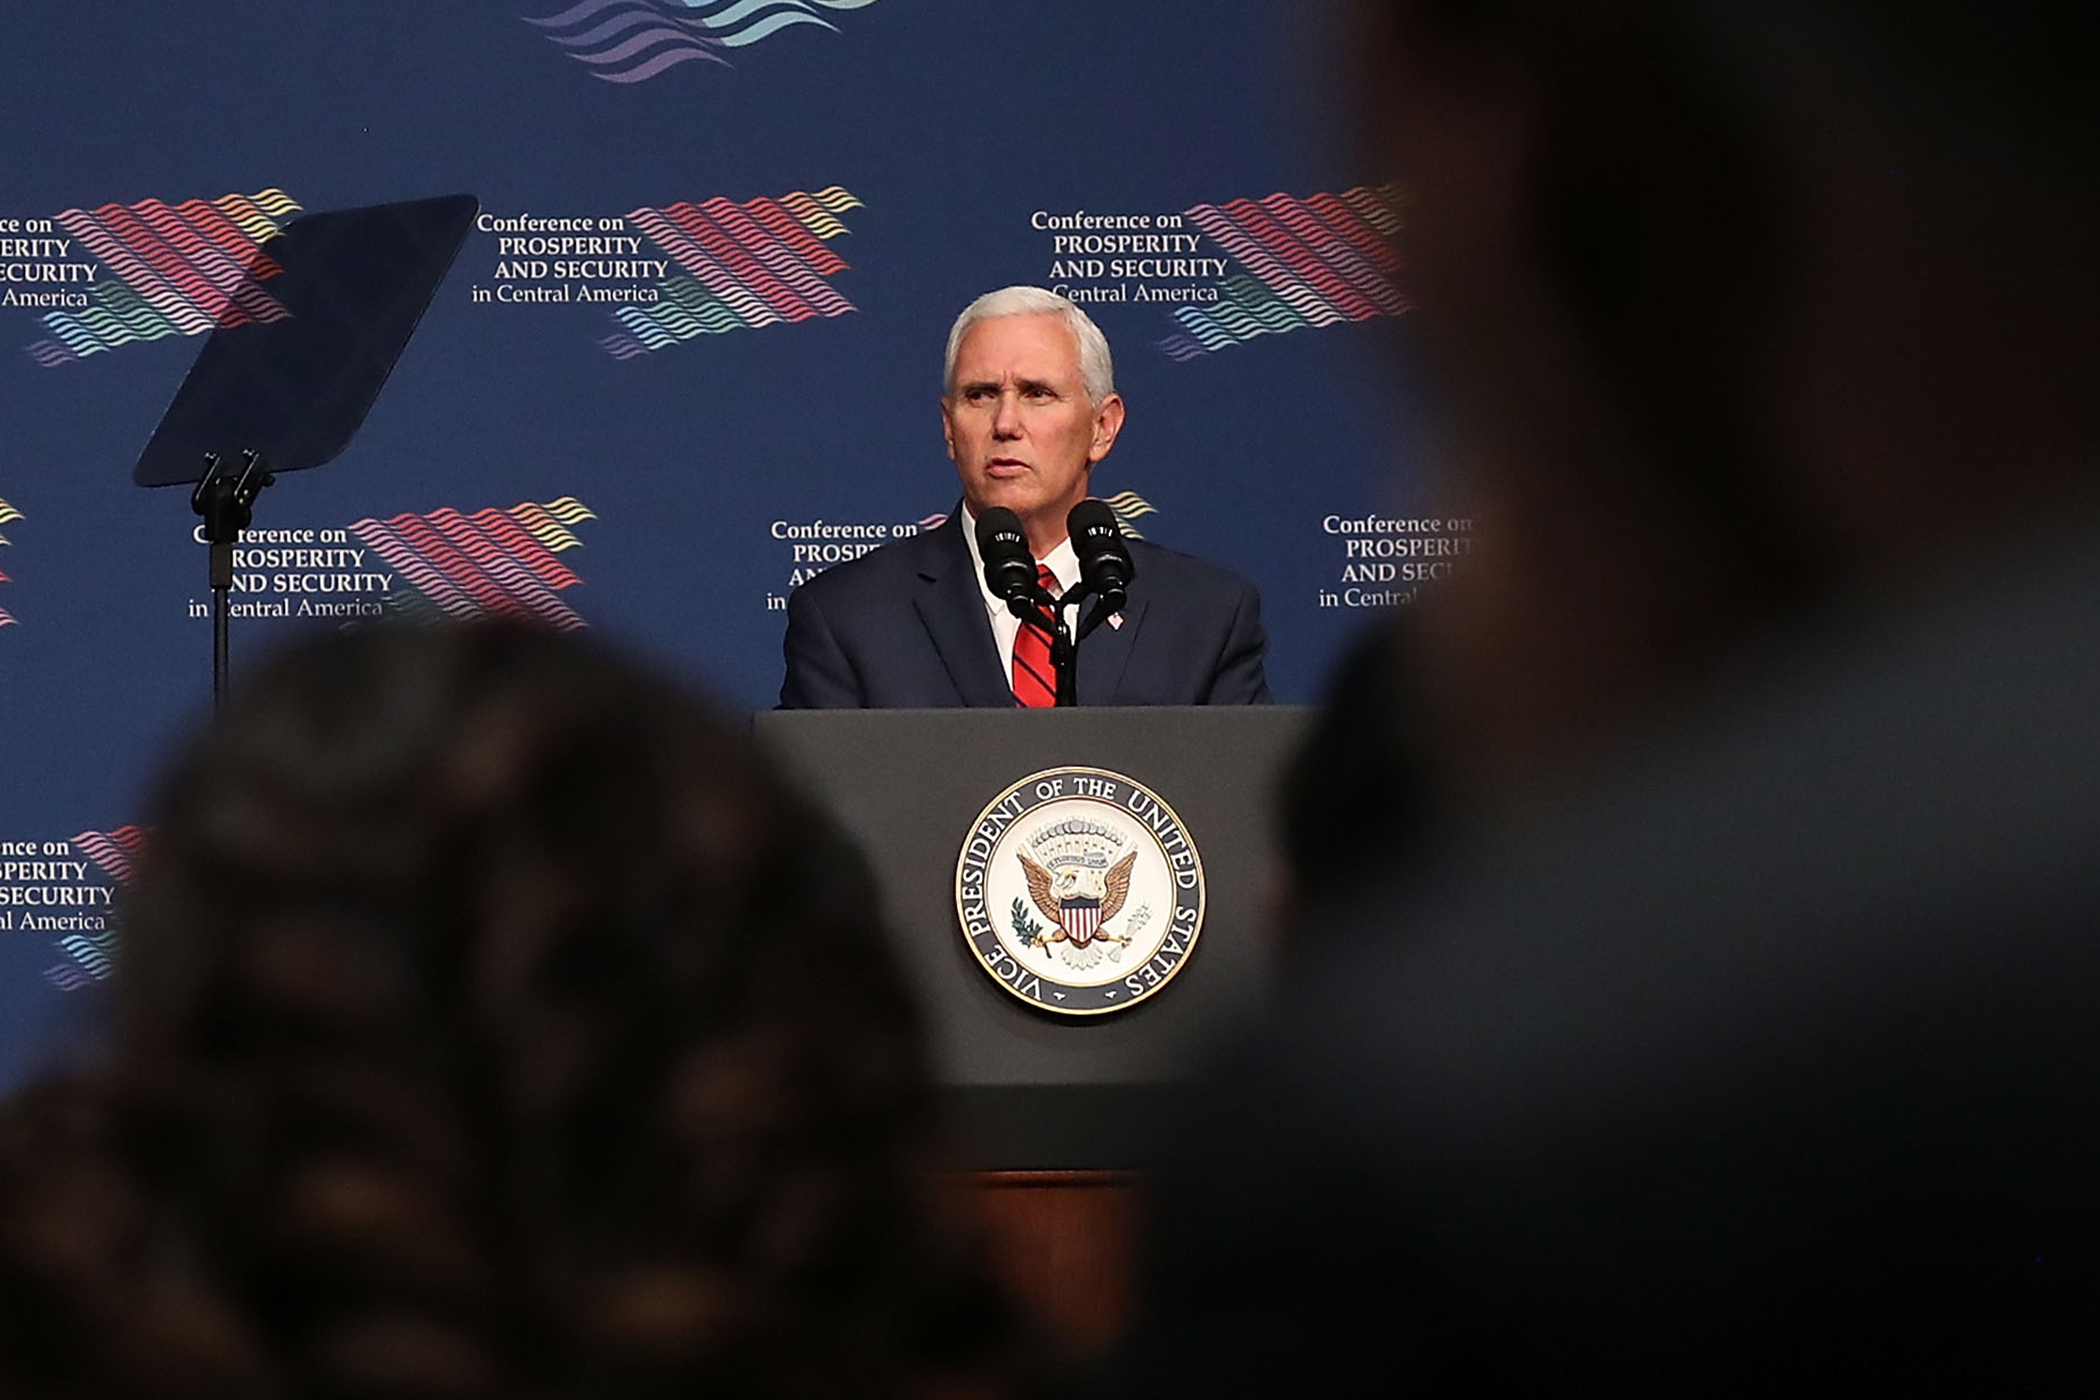 Vice President Mike Pence speaks during the Conference on Prosperity and Security in Central America at the Florida International University on June 15, 2017 in Miami, Florida. The conferance brought together government and business leaders from the United States, Mexico, Central America, and other countries to address the economic, security, and governance challenges and opportunities in El Salvador, Guatemala, and Honduras.  (Photo by Joe Raedle/Getty Images)